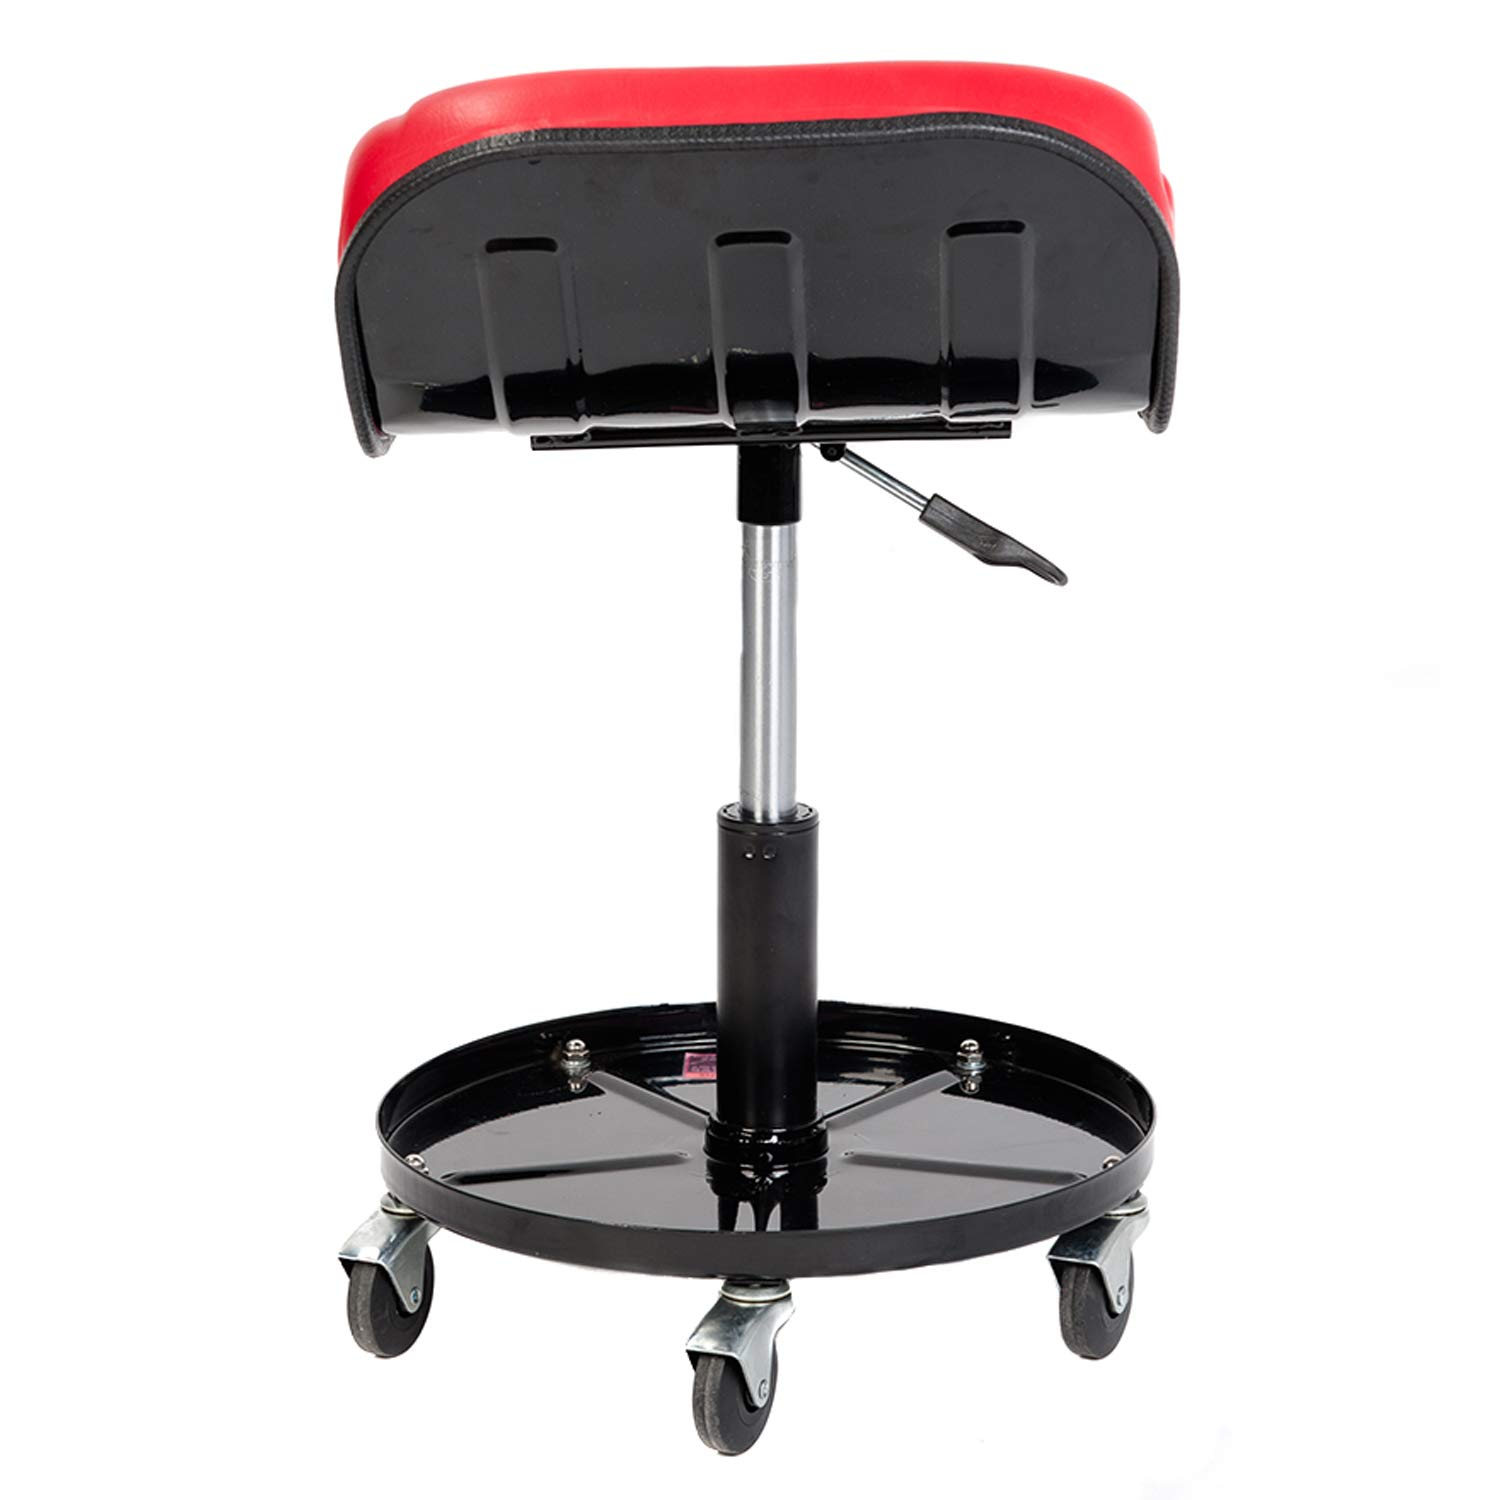 RTJ 300 lbs Capacity Pneumatic Mechanic Roller Seat Adjustable Rolling Stool, Red by RTJ (Image #3)